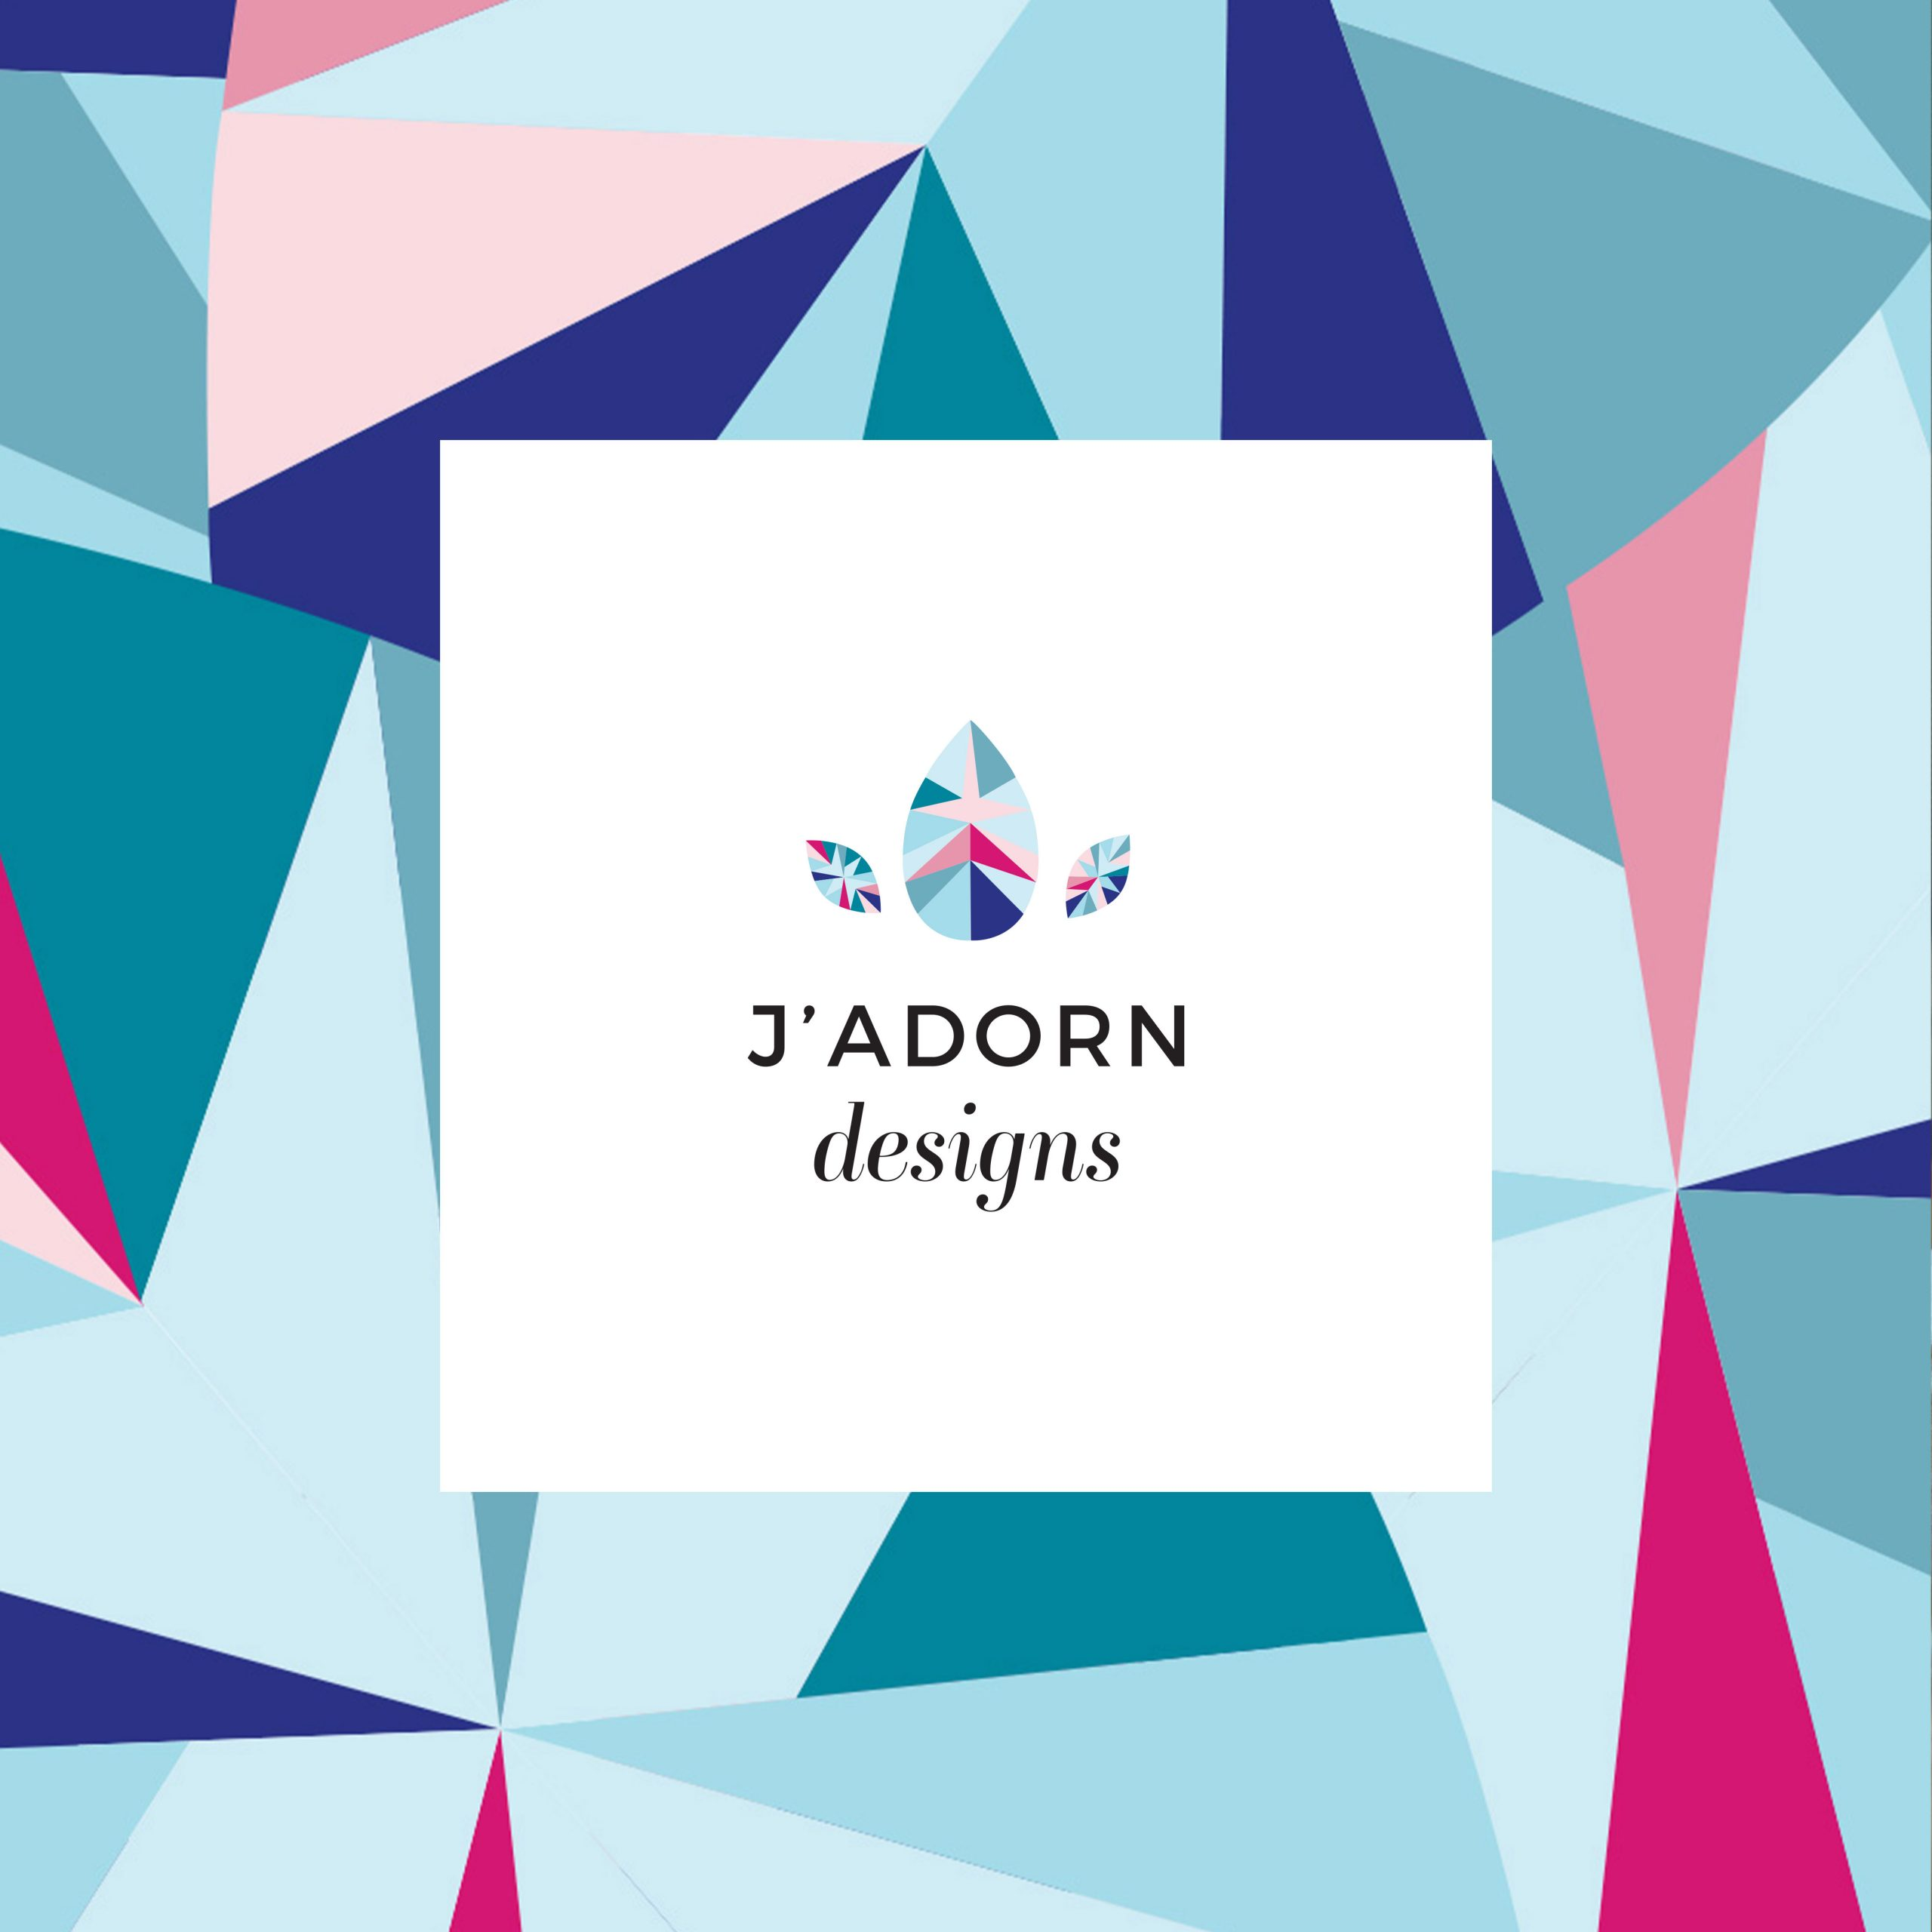 J'Adorn Designs pattern and logo, designed by C&V